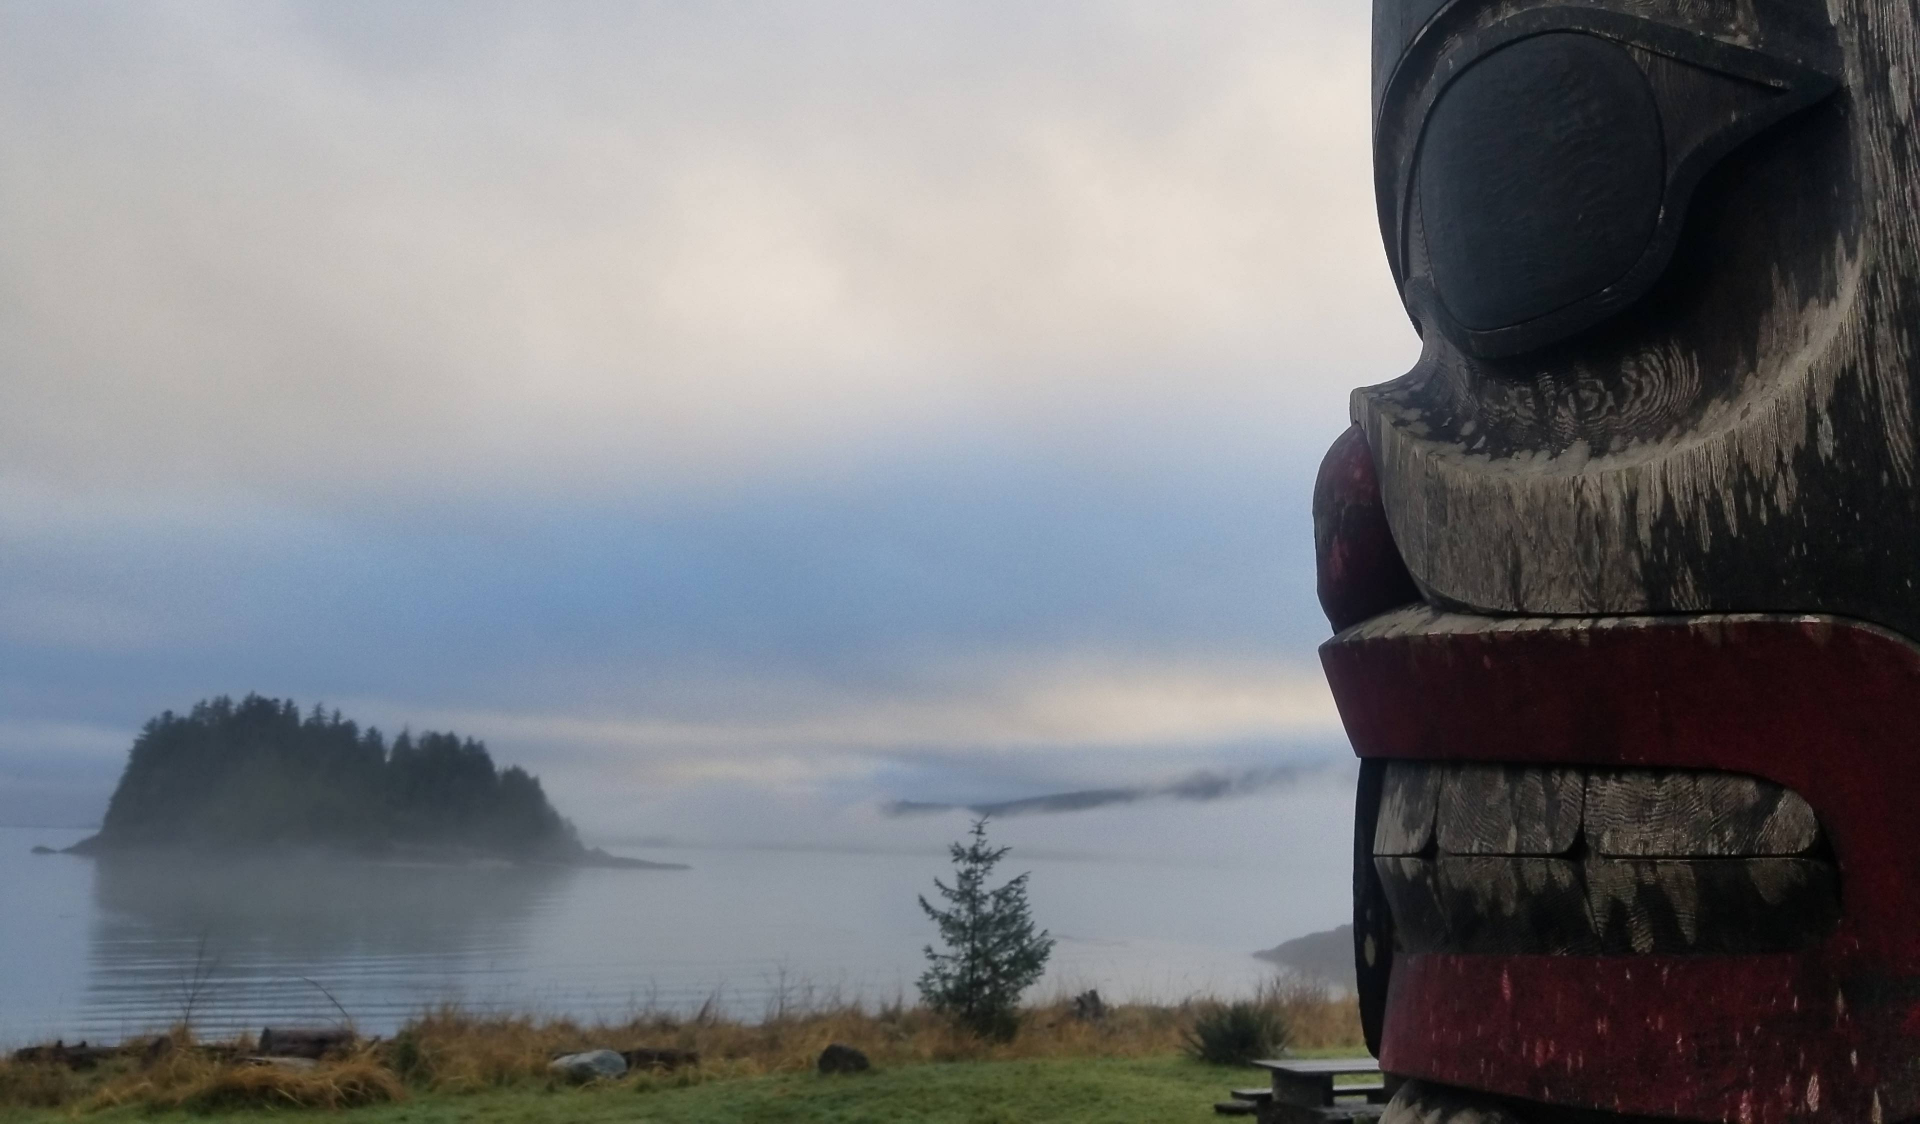 Photography of a totem pole in a foggy landscape with lake